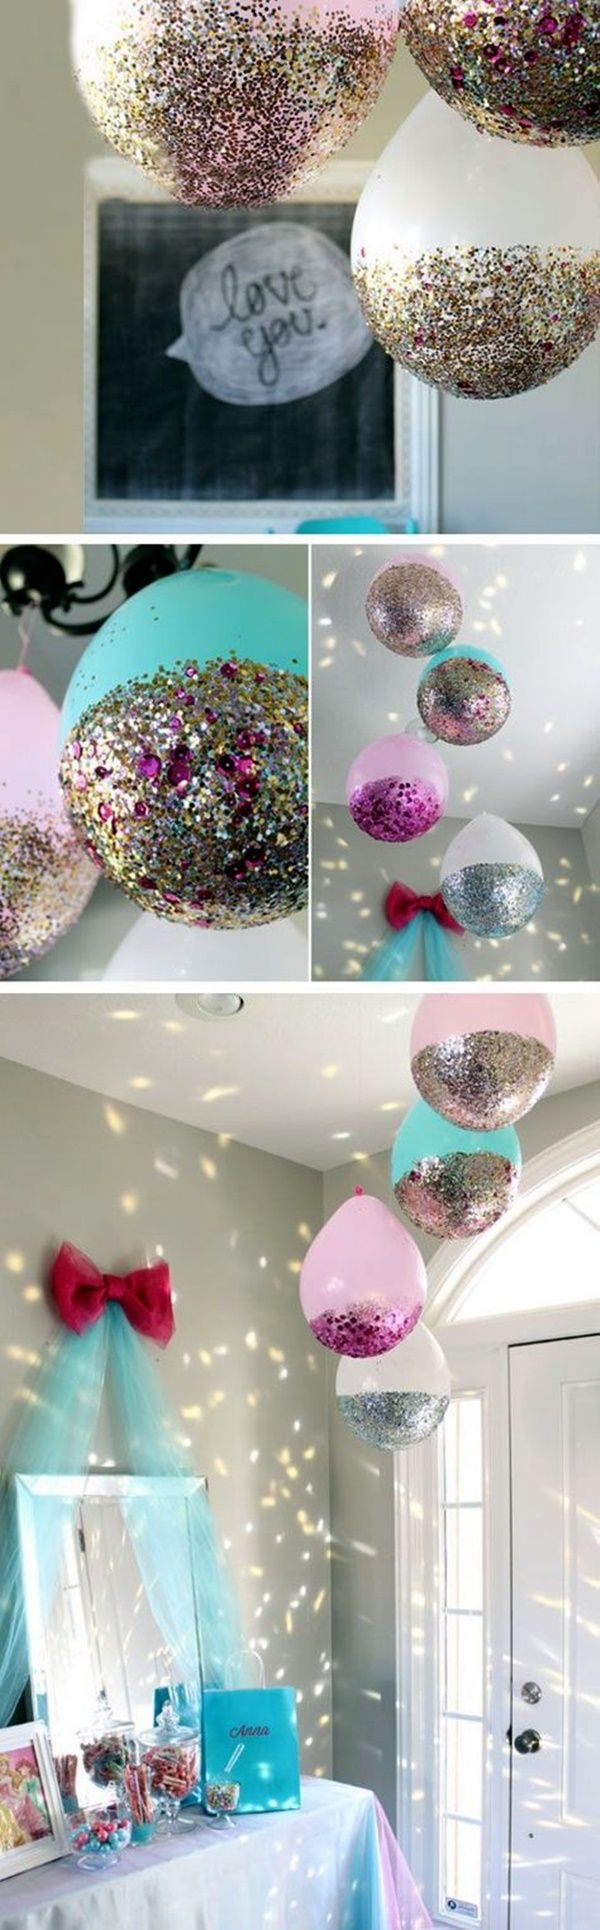 <3 BALLOONS ARE THE BEST DECOR EVER <3 7 Fun New Years Eve Party Ideas for 2017 | New Years Eve Party Ideas | Fenzyme.com